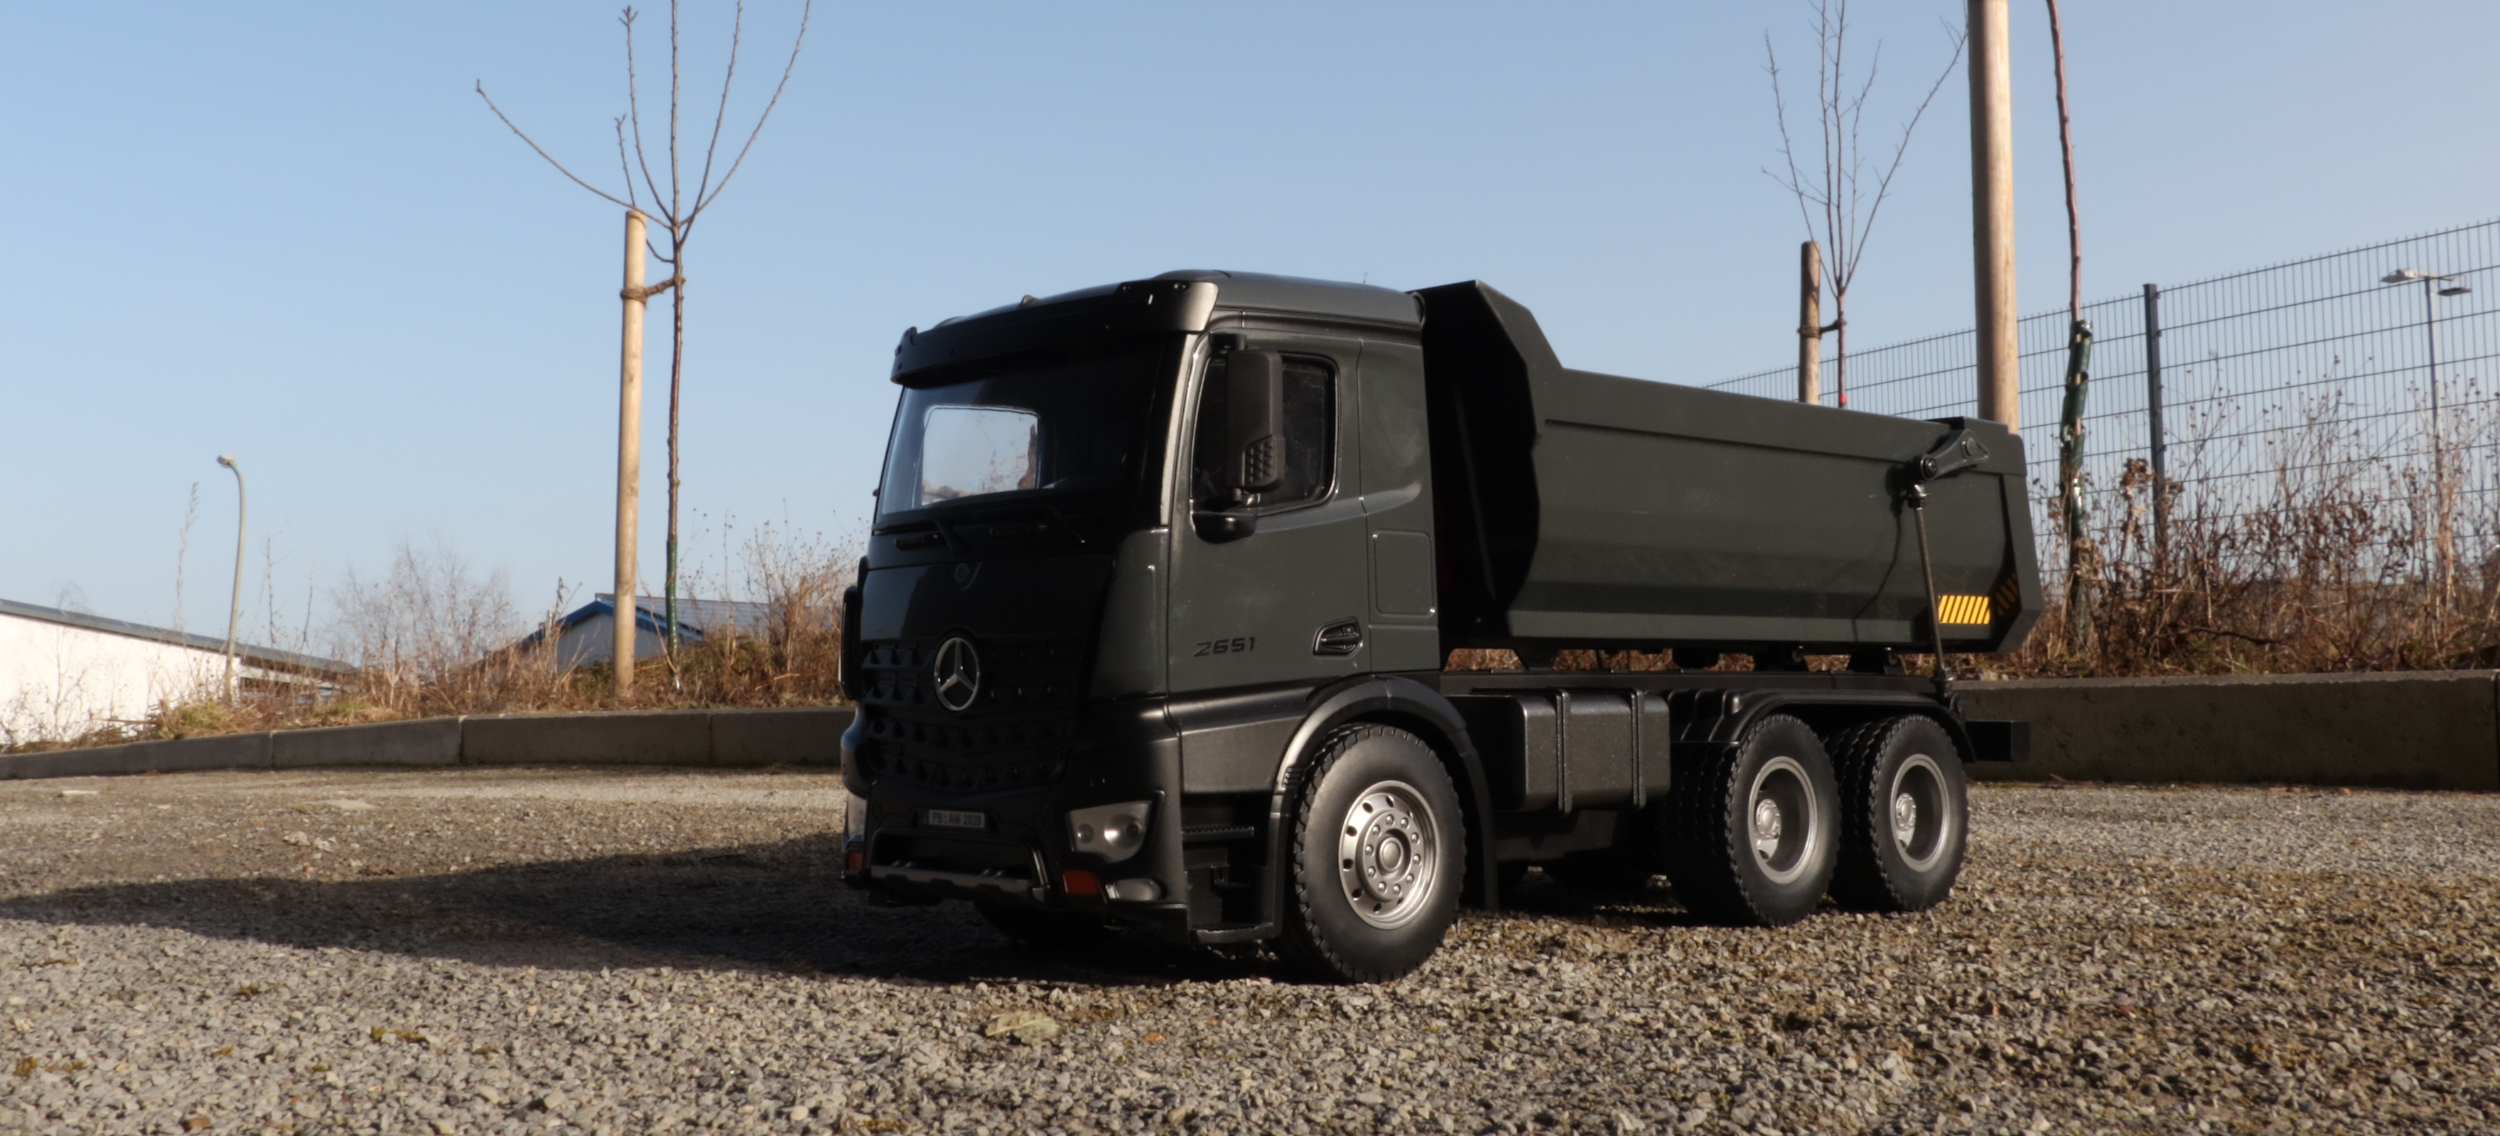 Mercedes-Benz Arocs LKW Kipper - 22504